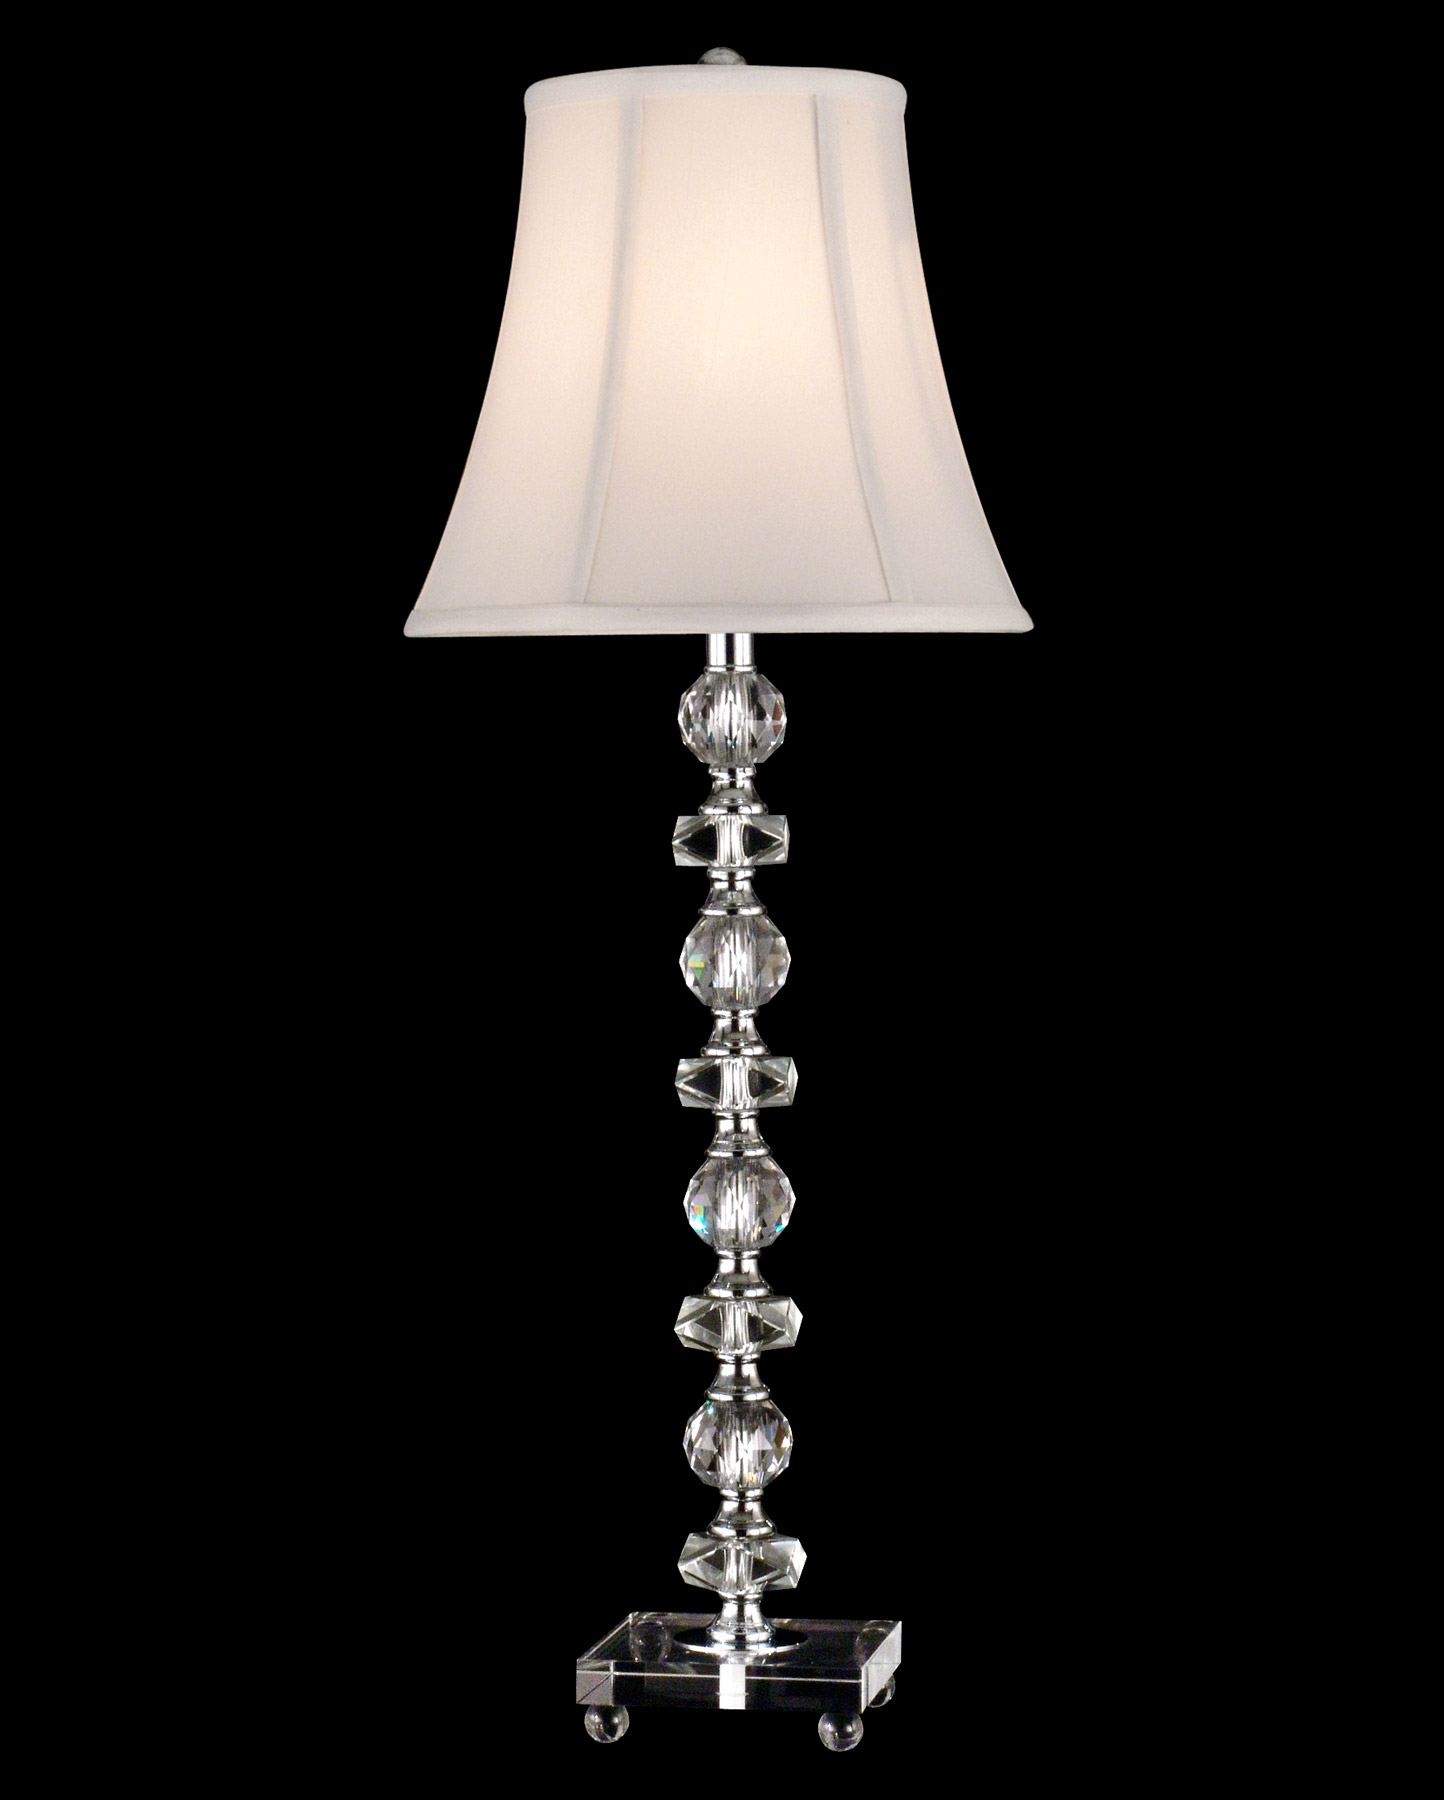 Home gt lamps gt table lamps gt buffet lamps gt dale tiffany gb11065